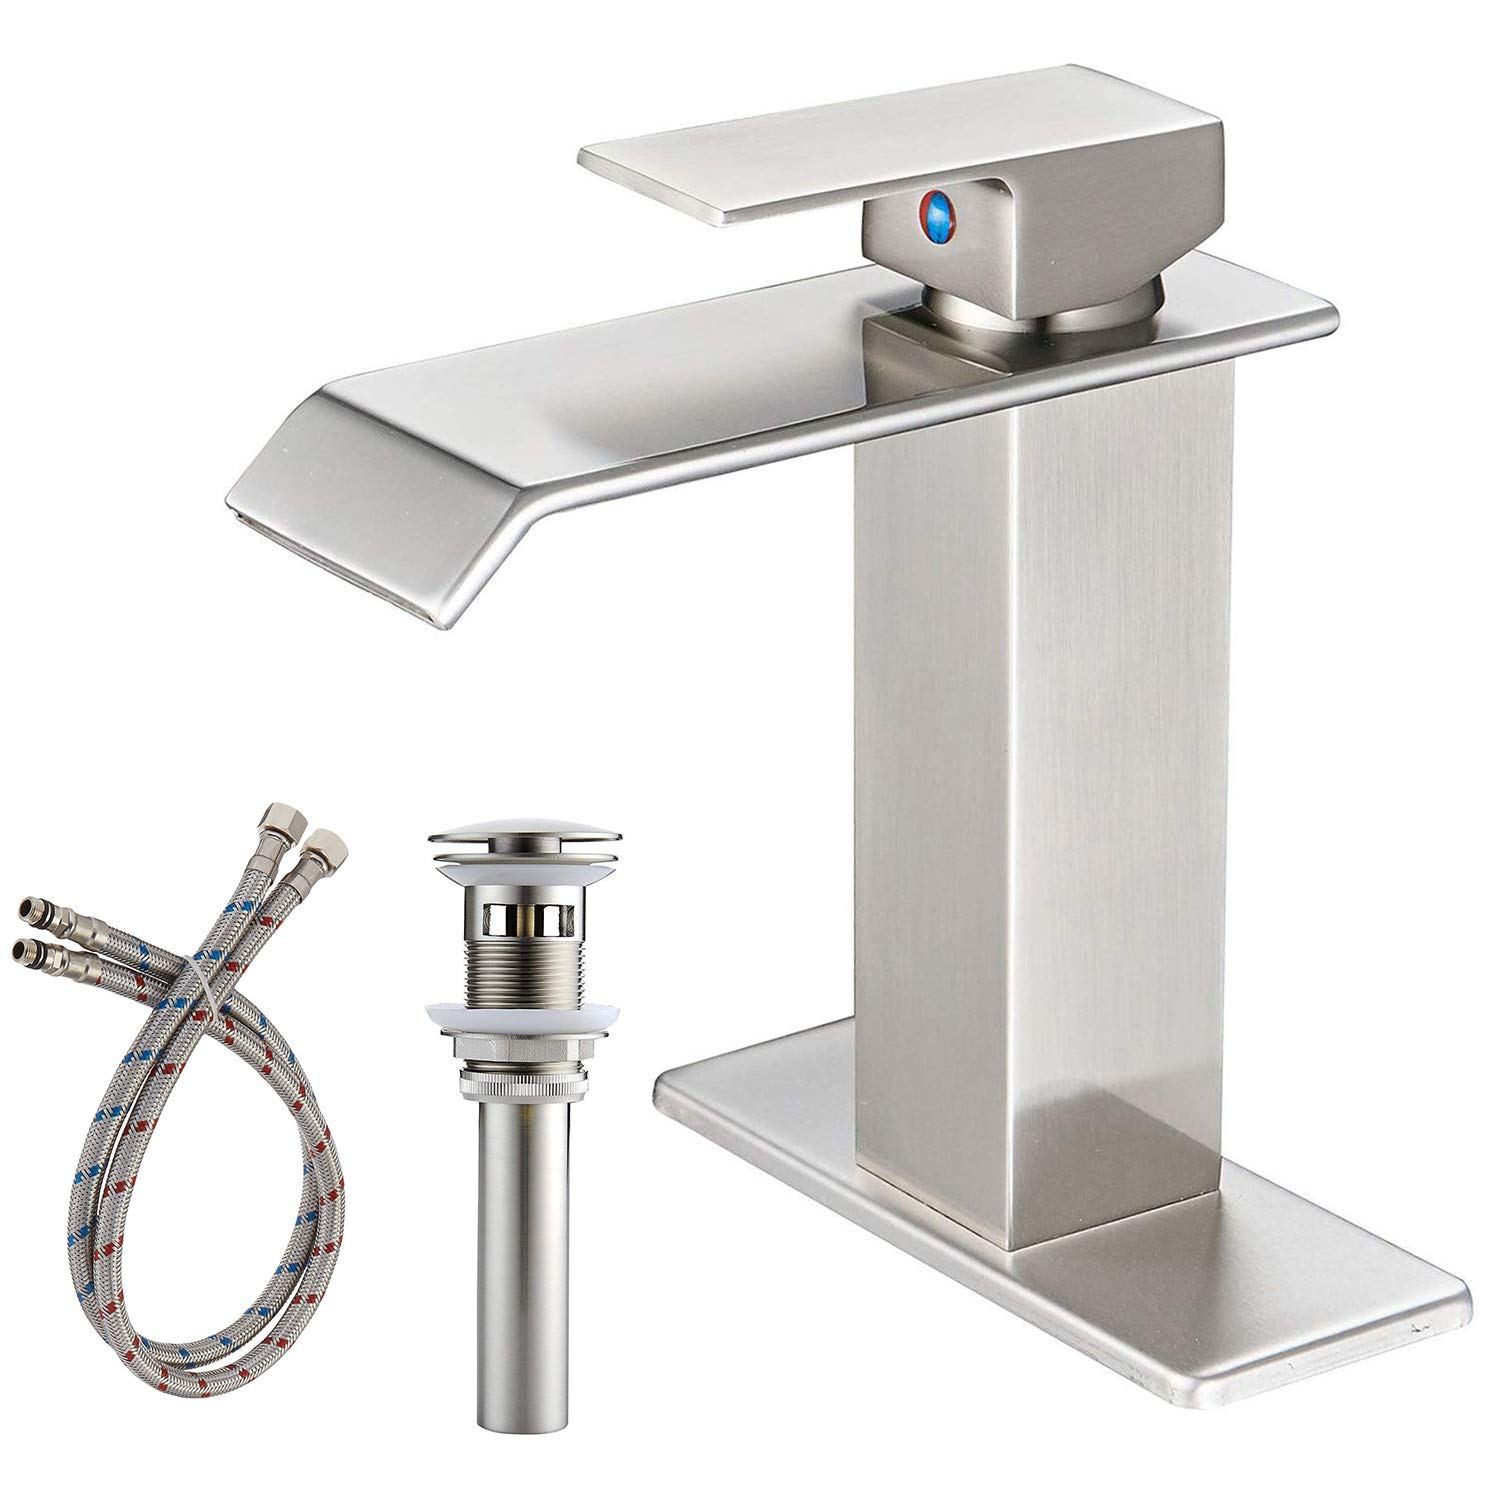 BWE Waterfall Commercial Spout Brushed Nickel Single Handle One Hole Bathroom Sink Faucet Deck Mount Lavatory by BWE